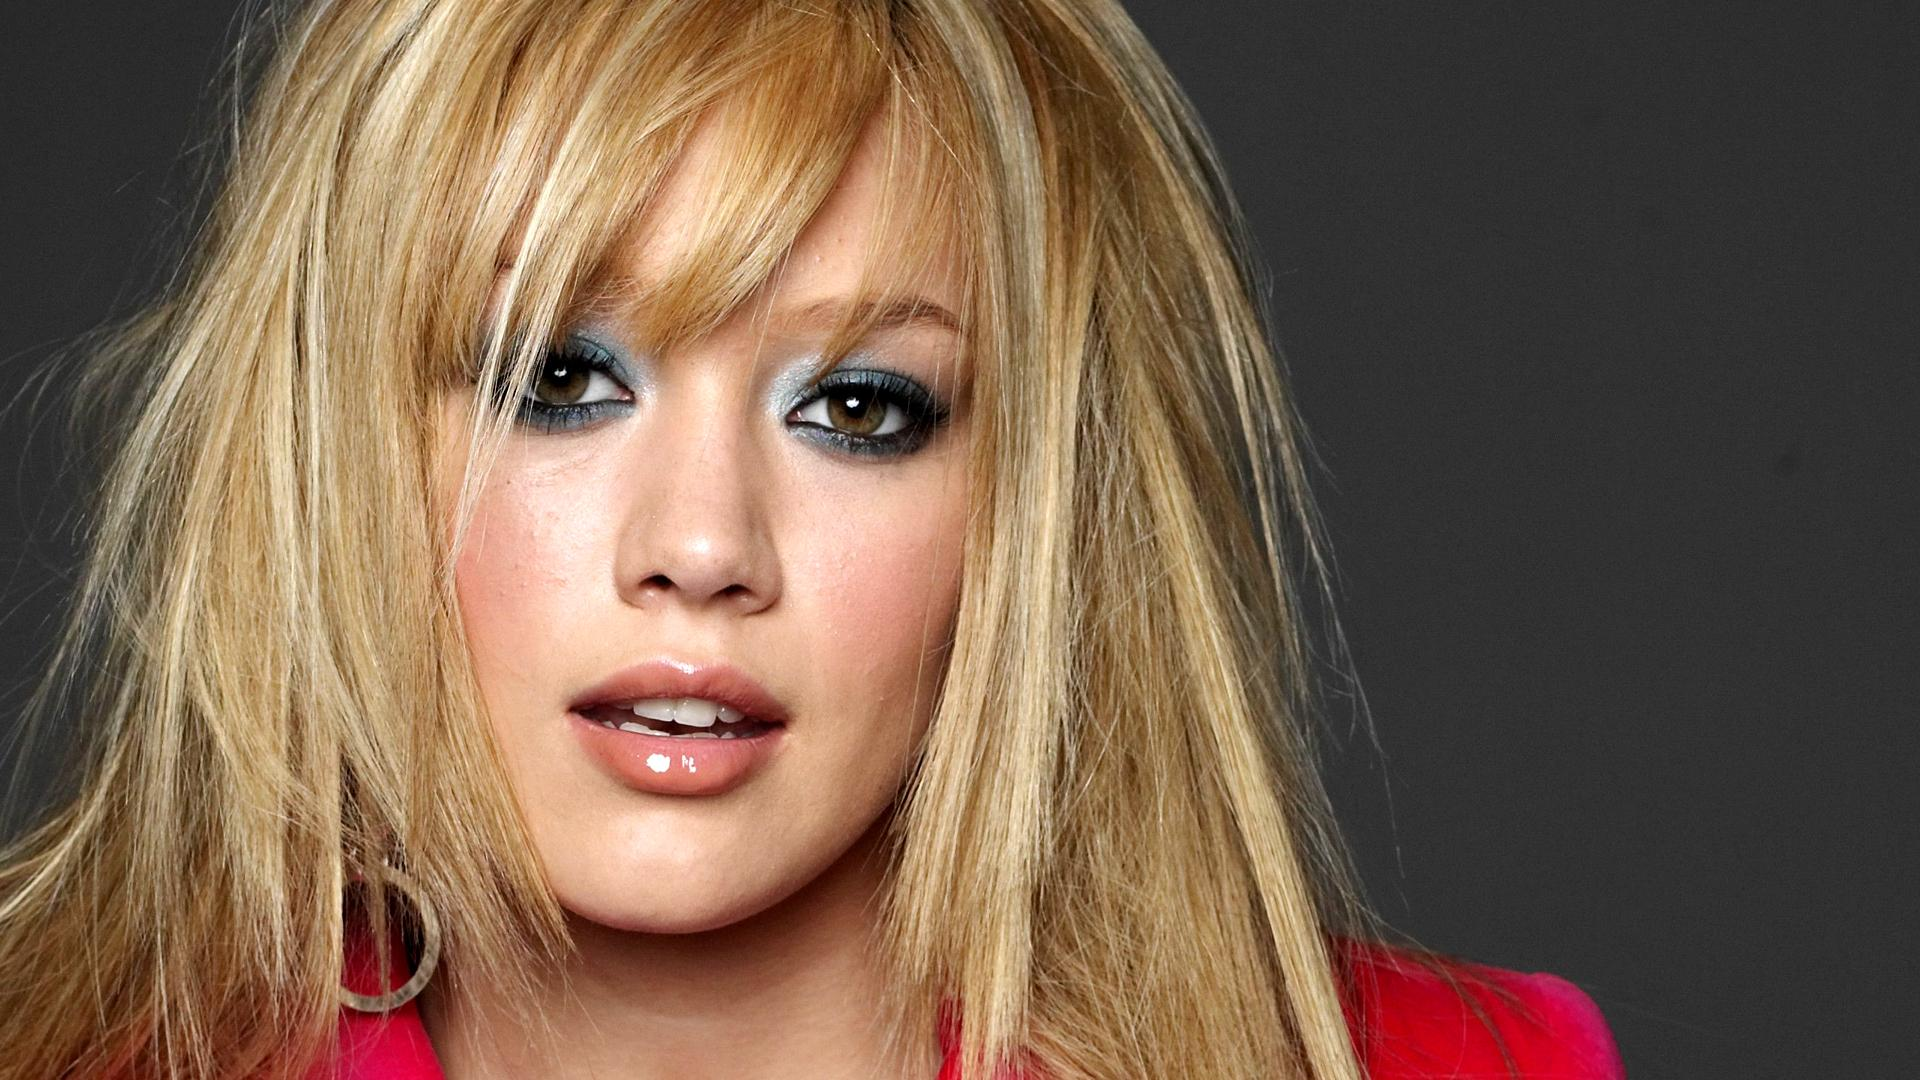 How rich is Hilary Duff?